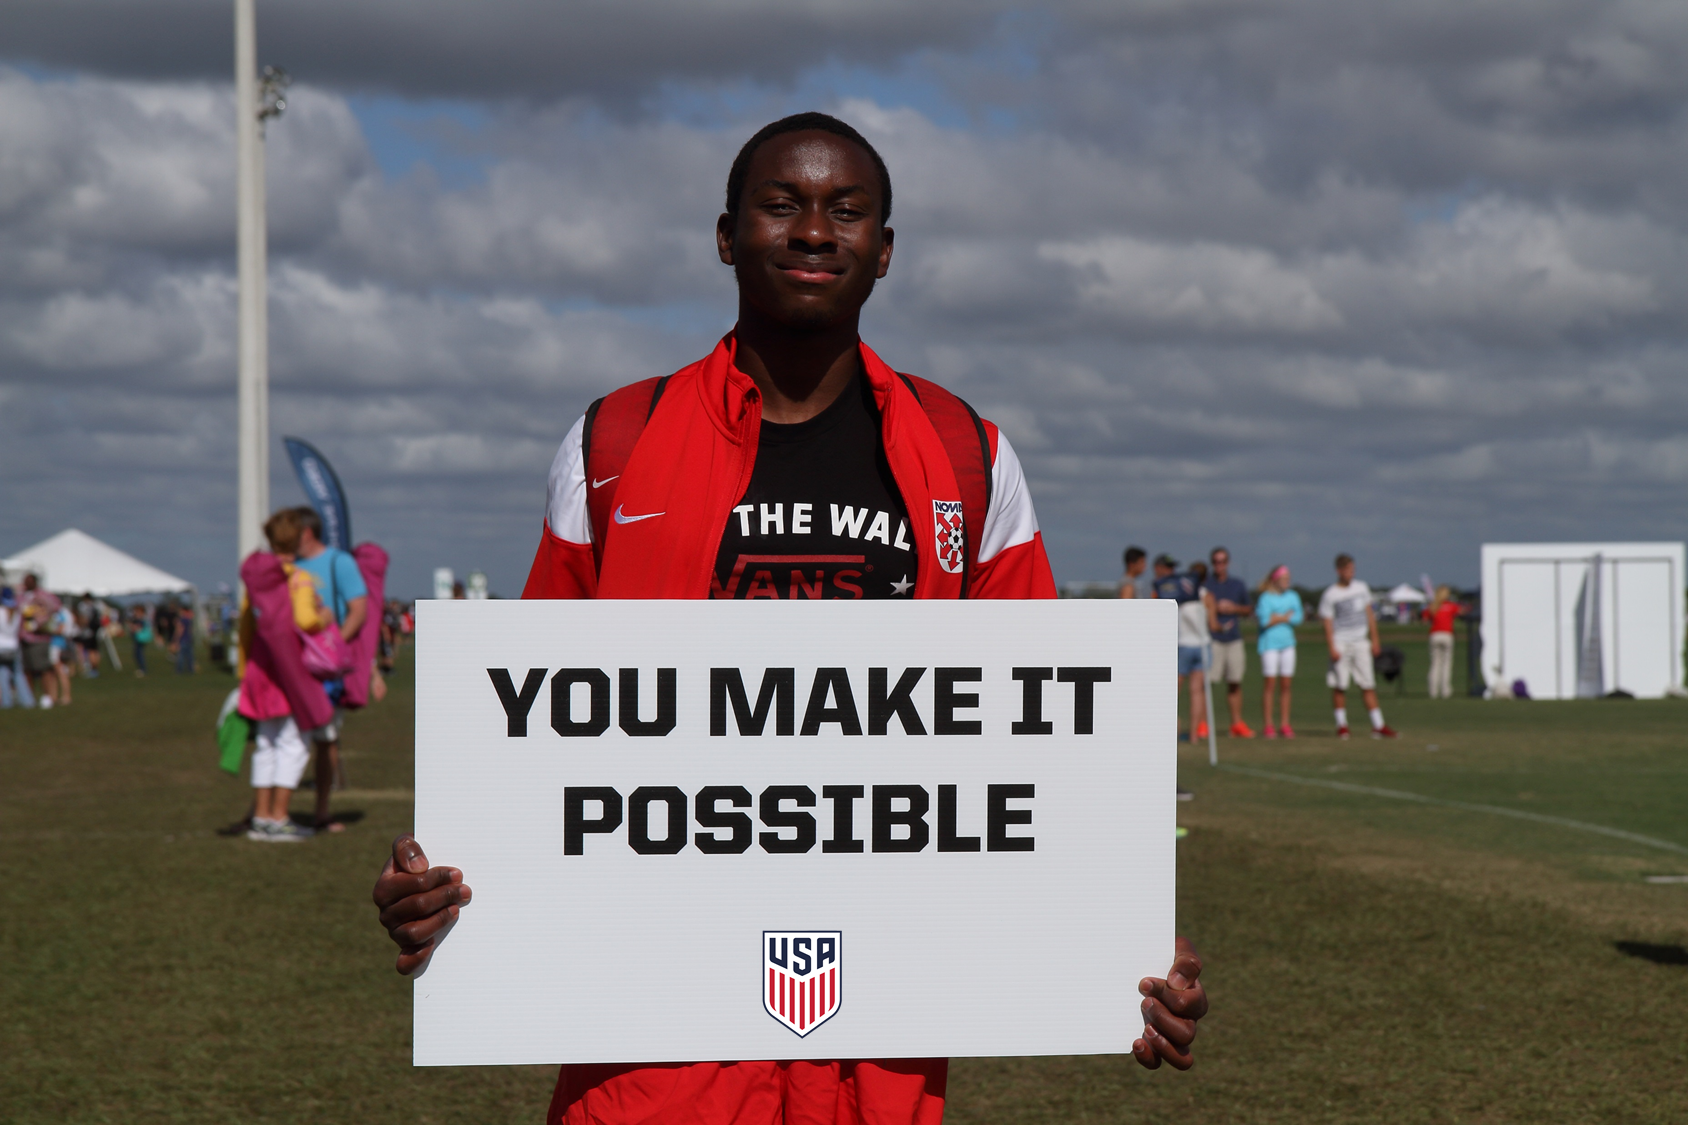 2018-2019 Academy Scholarships - 565: Scholarship Recipients$1,469: Average Scholarship amount15: Youth National Team players supported129: Academy clubs with a Scholarship Recipient86%: Recipients with non-white ethnic backgrounds$30,651: Average household income of a recipient2 in 5: Recipients are on free or reduced lunches at school